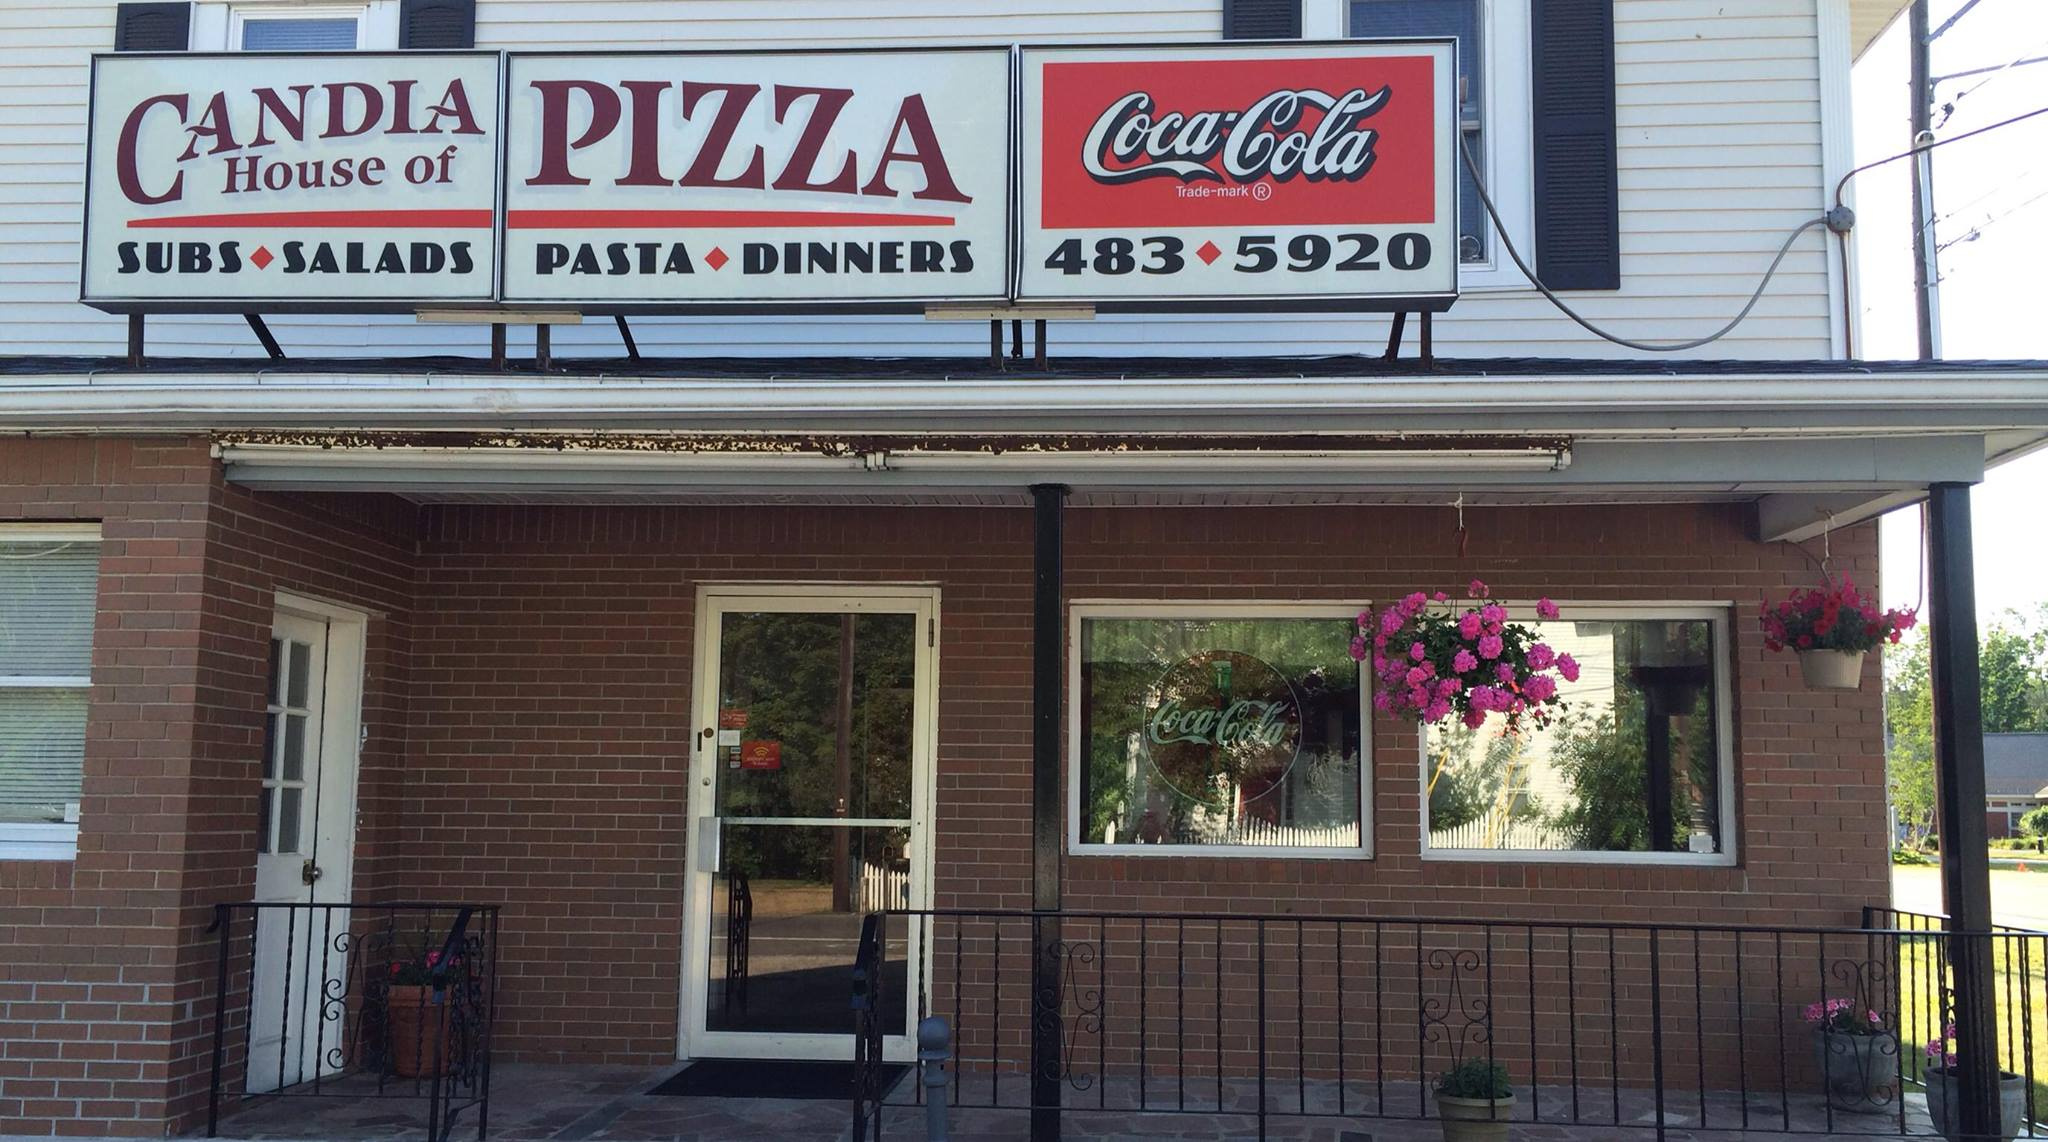 Candia House of Pizza in Candia, New Hampshire